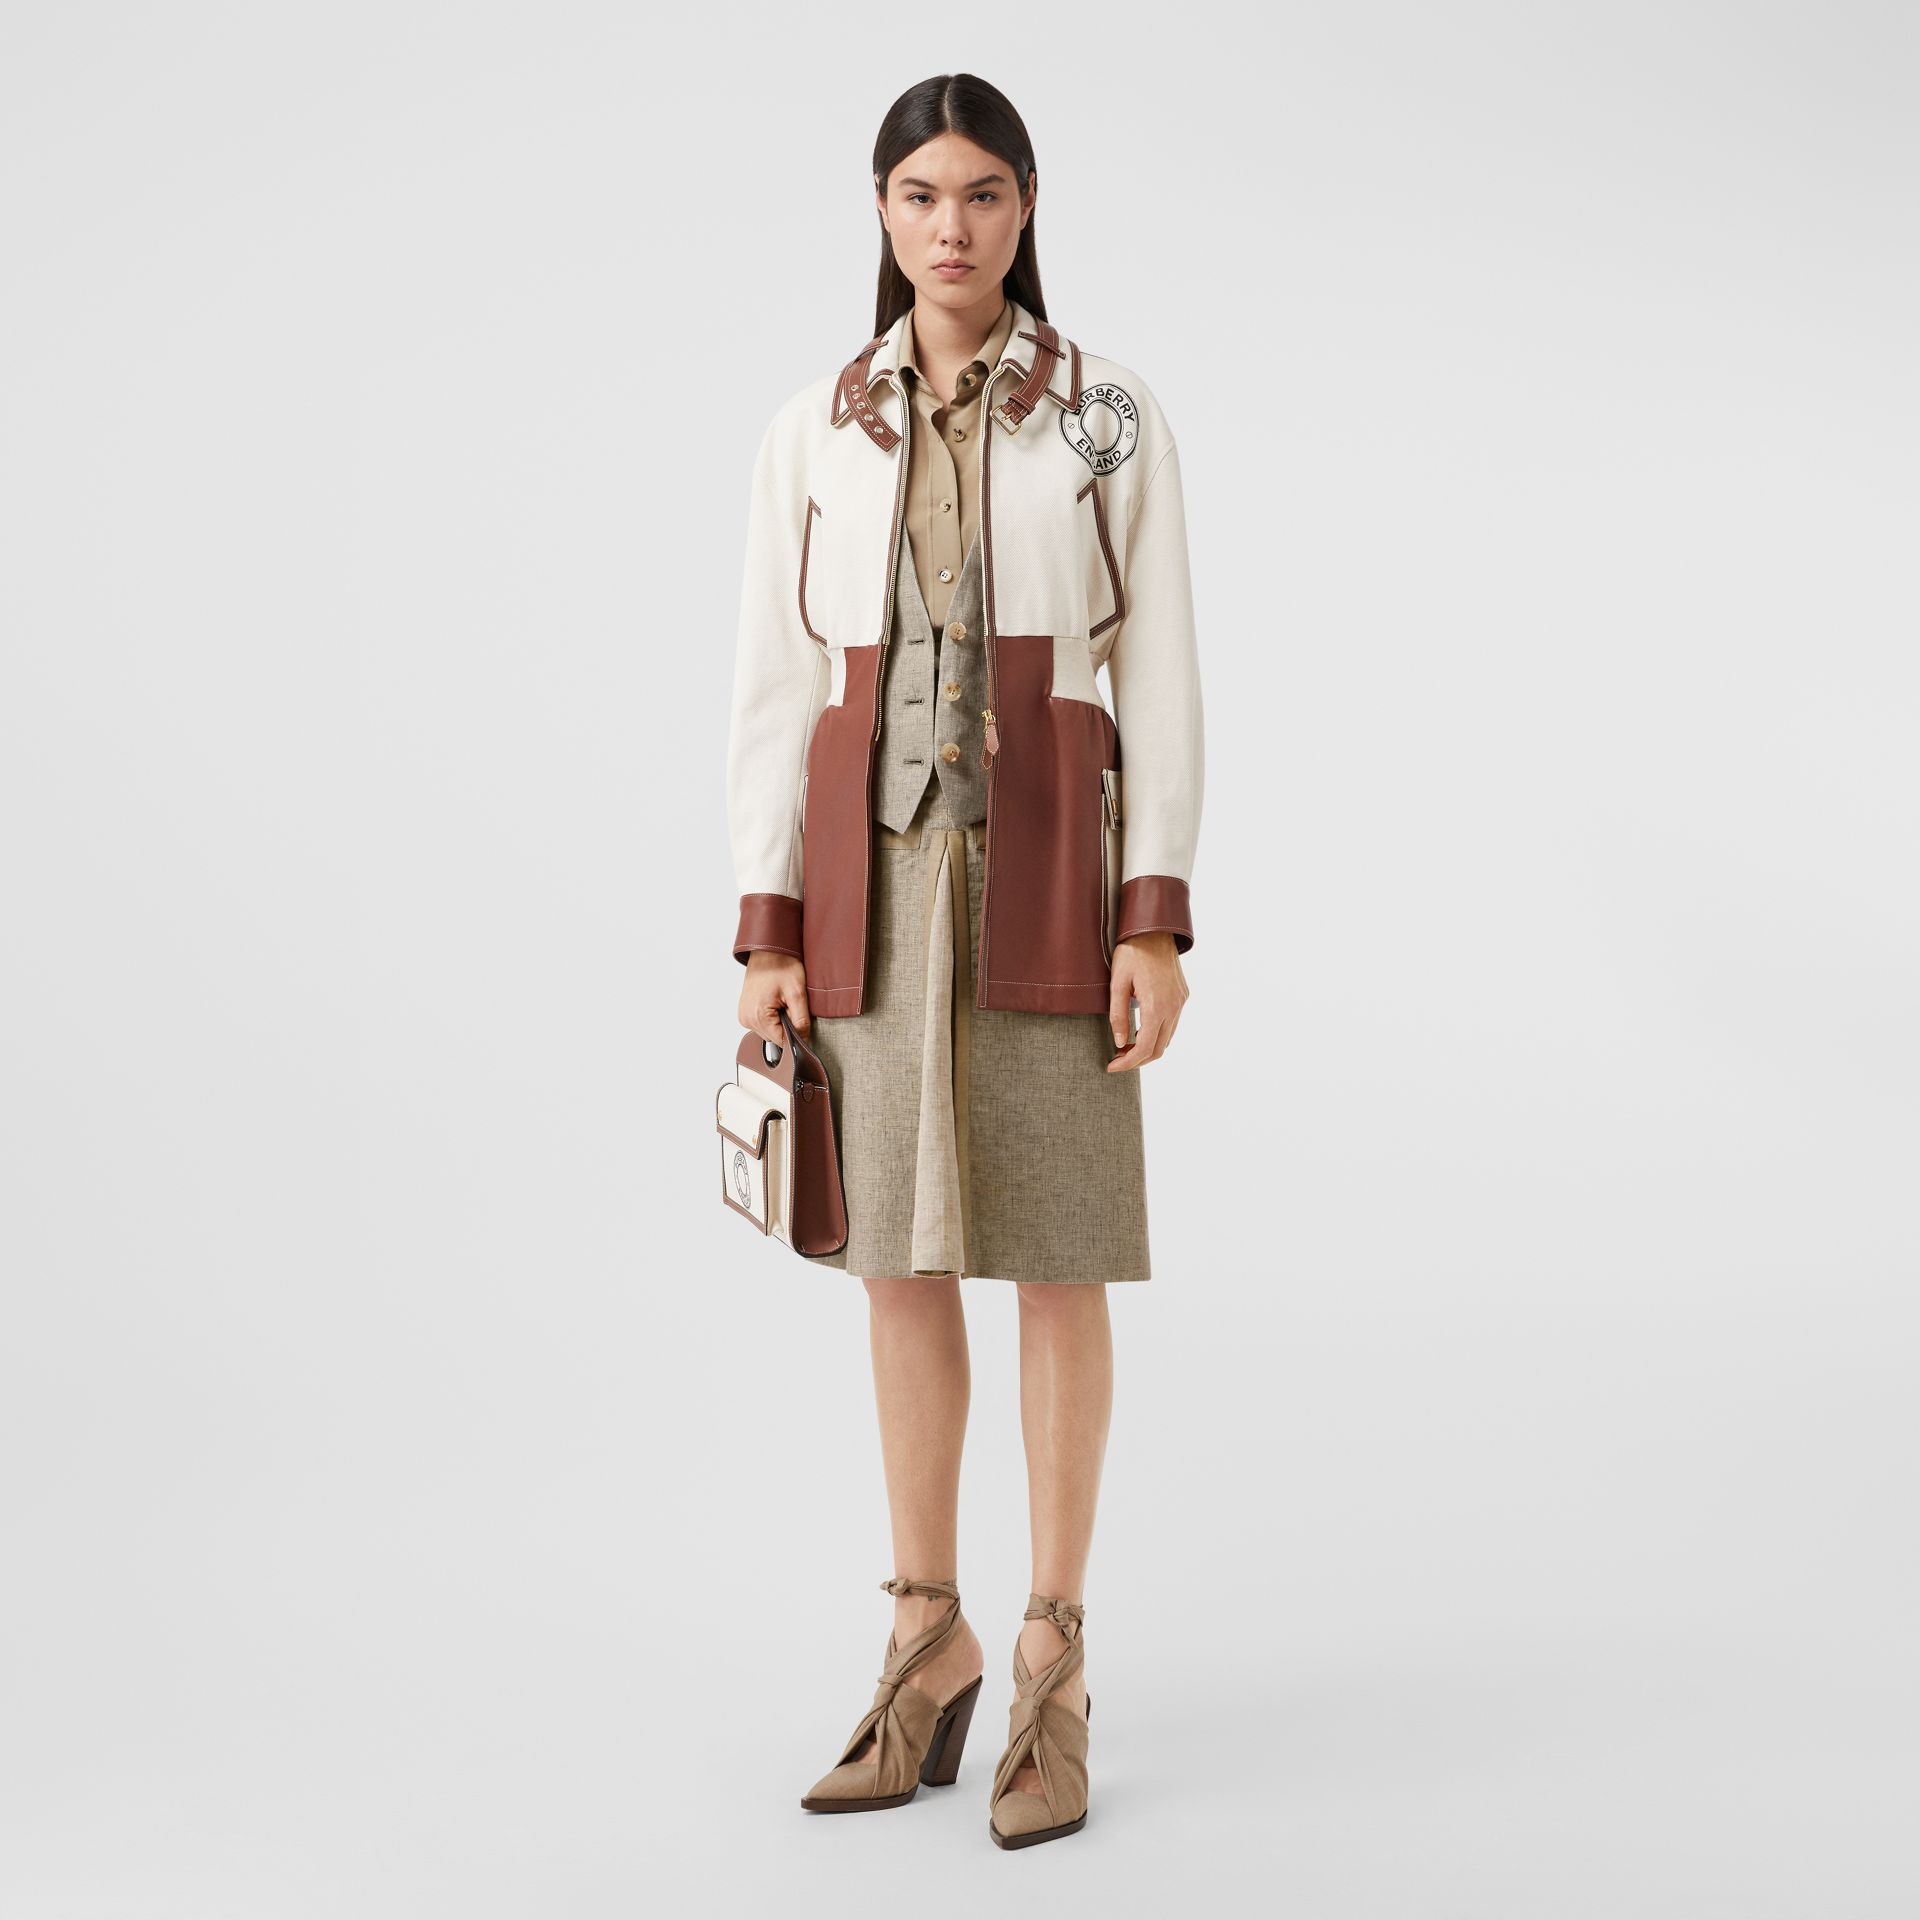 Box-pleat Detail Wool Cashmere A-line Skirt in Pecan Melange - Women | Burberry Canada - gallery image 5